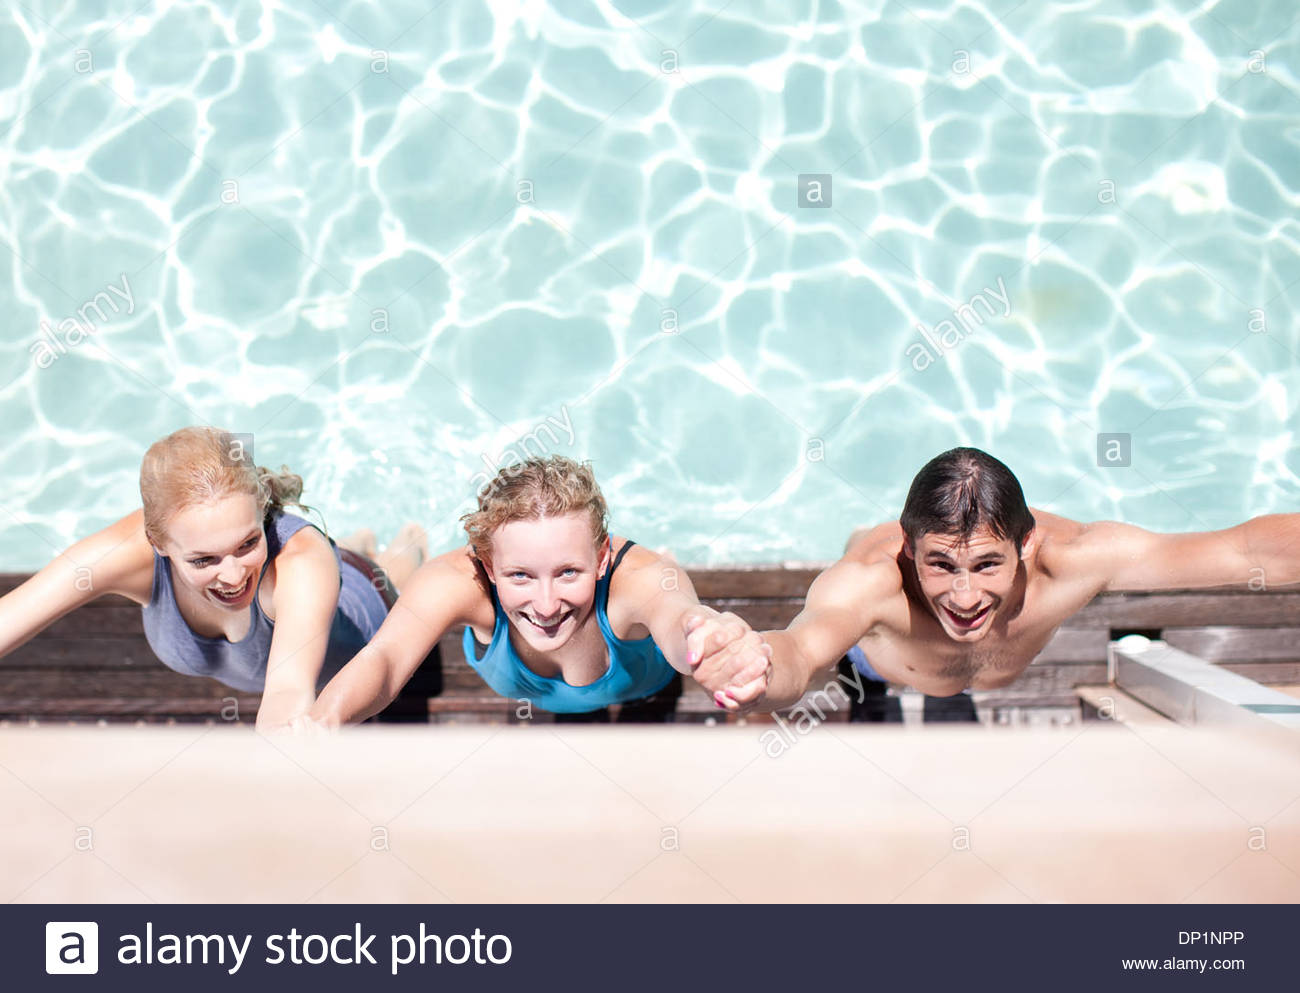 Friends beside swimming pool - Stock Image